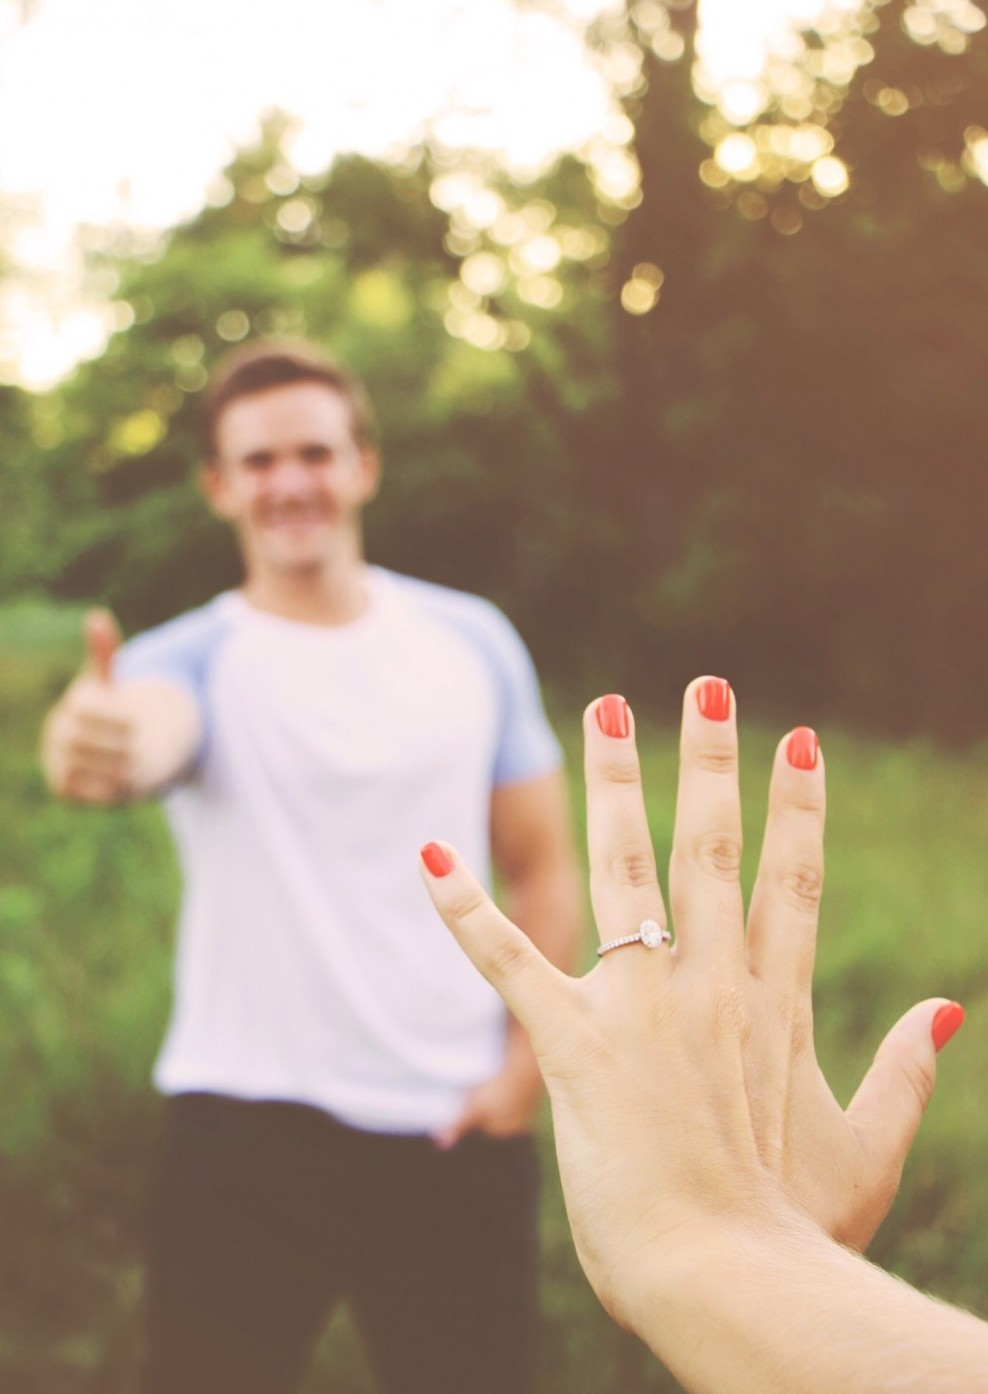 Image 5 of Jenae and Clint's Couples Photoshoot Proposal